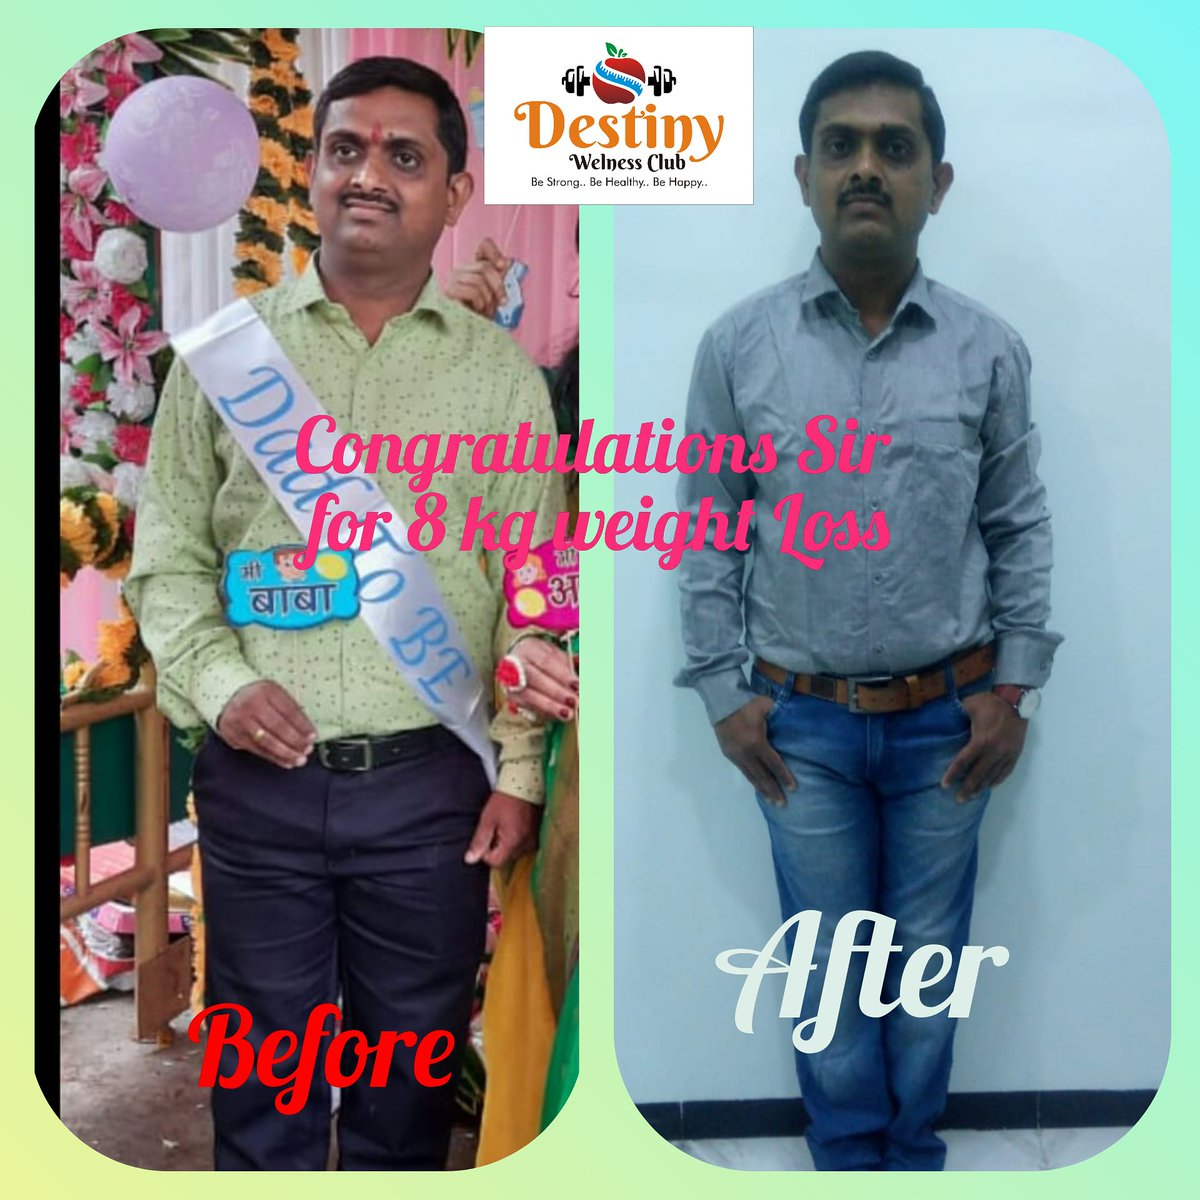 Congratulations Mr.Jagdish Sir for 8 kg weight loss...💐💐  #weightloss #ravindrafitcoach #destinywellnessnsk #nasik #weightlossjourney #fitness #healthylifestyle #motivation #healthy #health #workout #diet #fitnessmotivation #healthyfood #fit #weightlosstransformation #gym